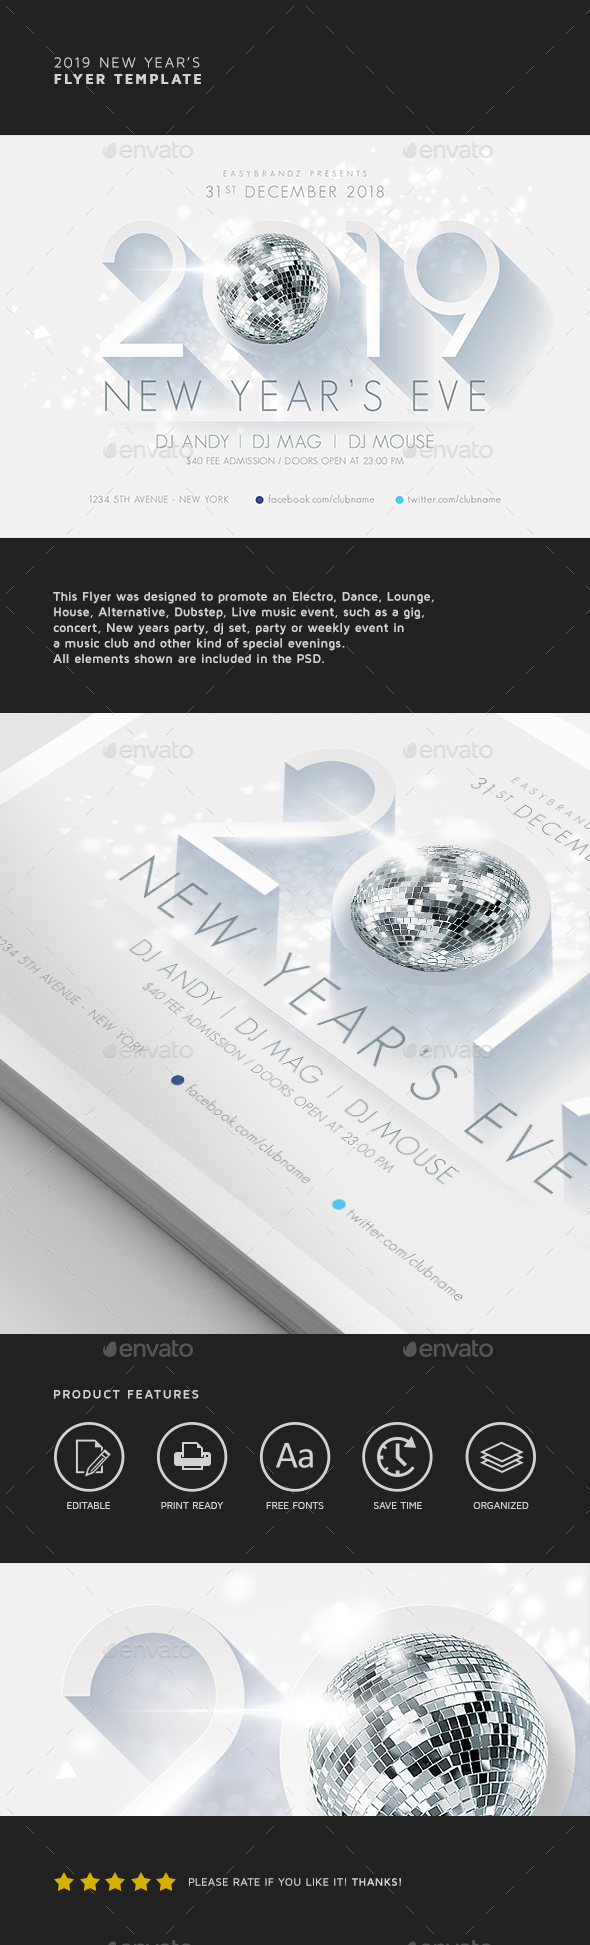 2019 New Year's Flyer Template - Holidays Events